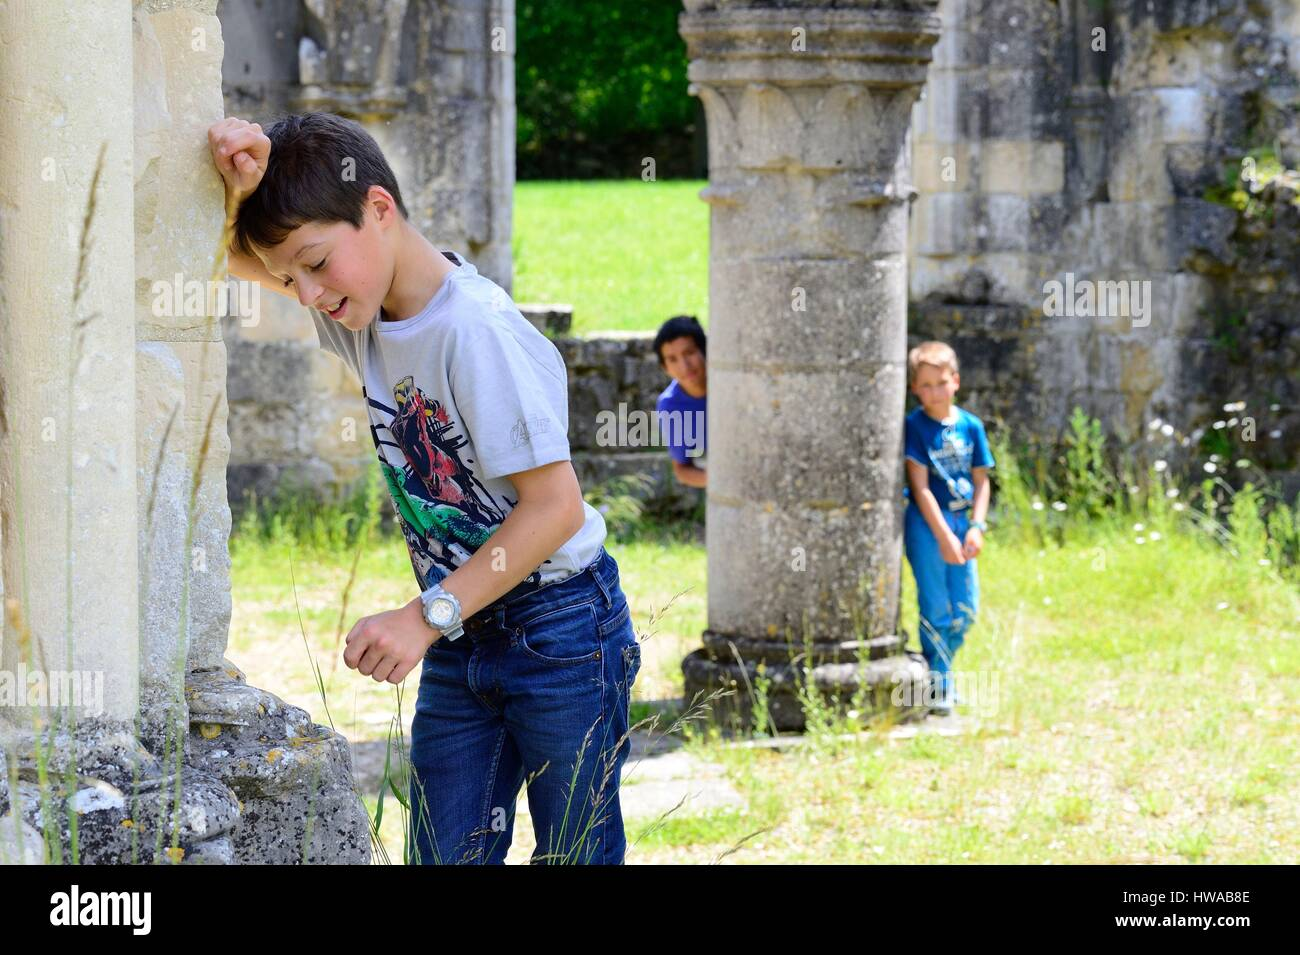 France, Aisne, Bouconville-Vauclair, Vauclair abbey, family picnic, play hide and seek - Stock Image